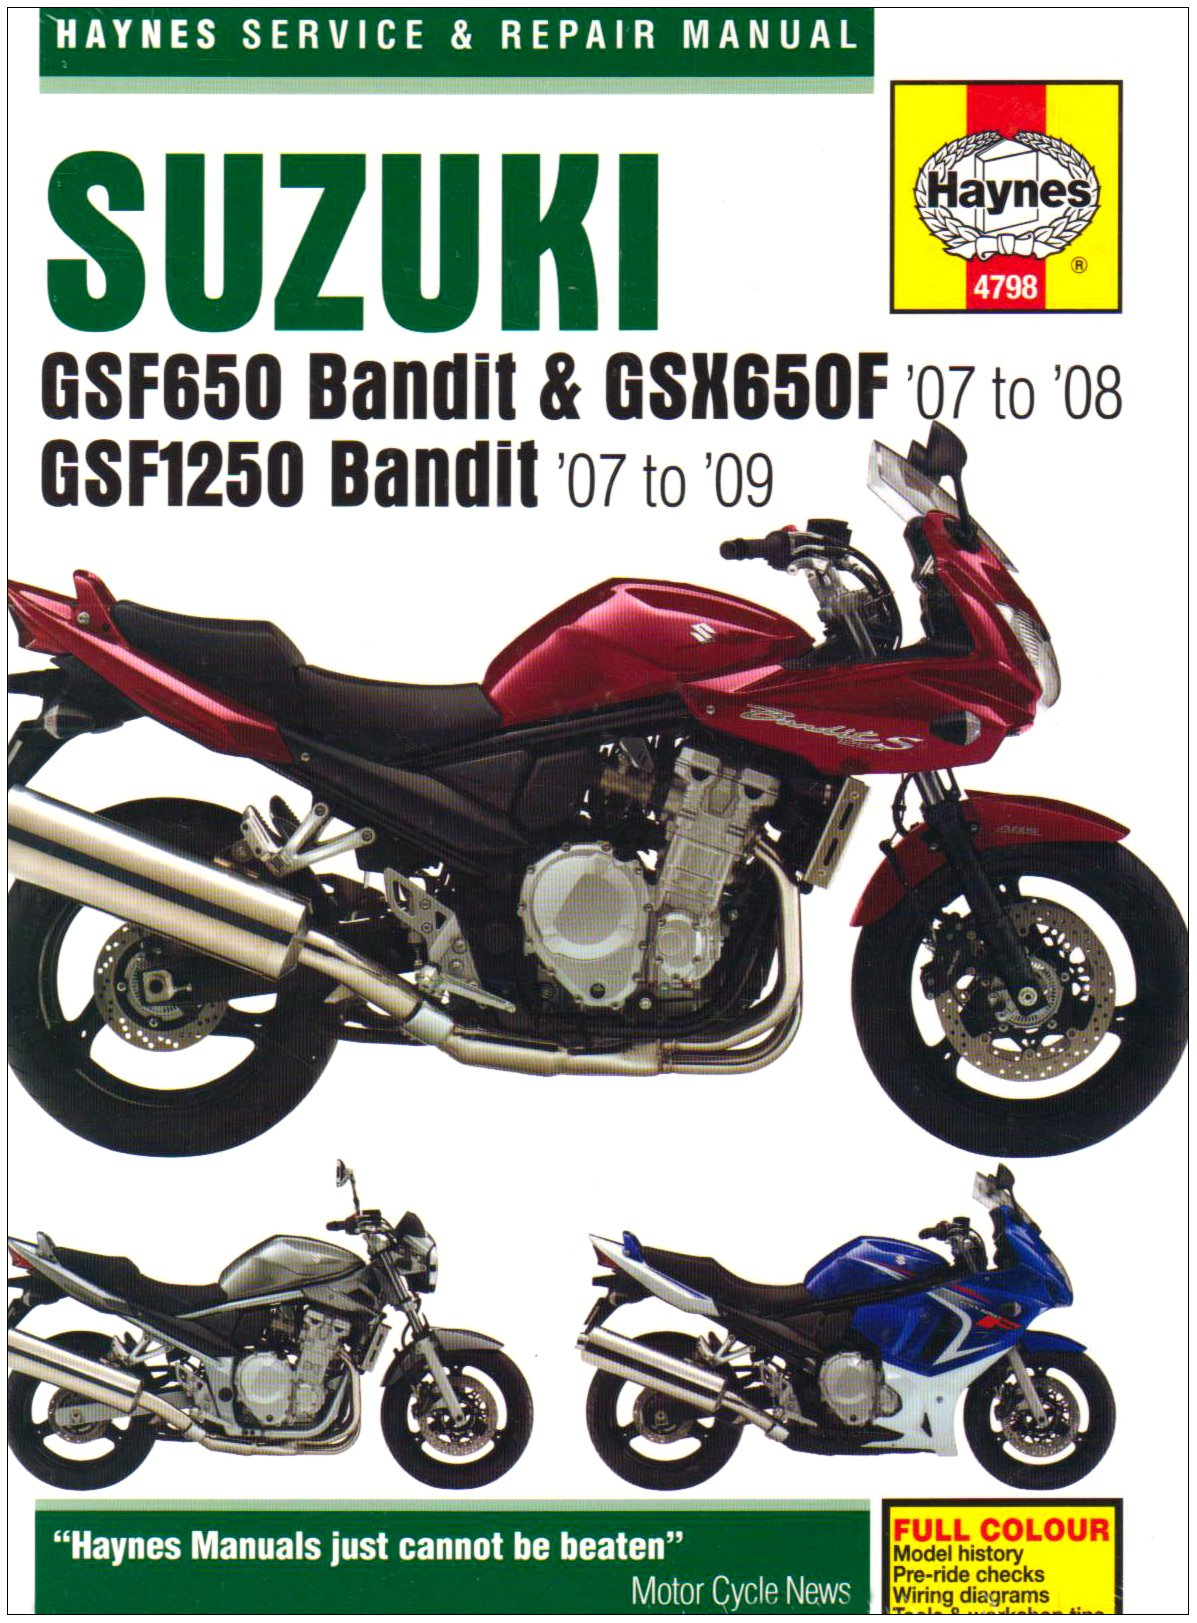 Suzuki Gsf650 1250 Bandit And Gsx650fservice And Repair Manual 2007 To 2009 Haynes Service And Repair Manuals Amazon Co Uk Mather Phil 9781844257980 Books